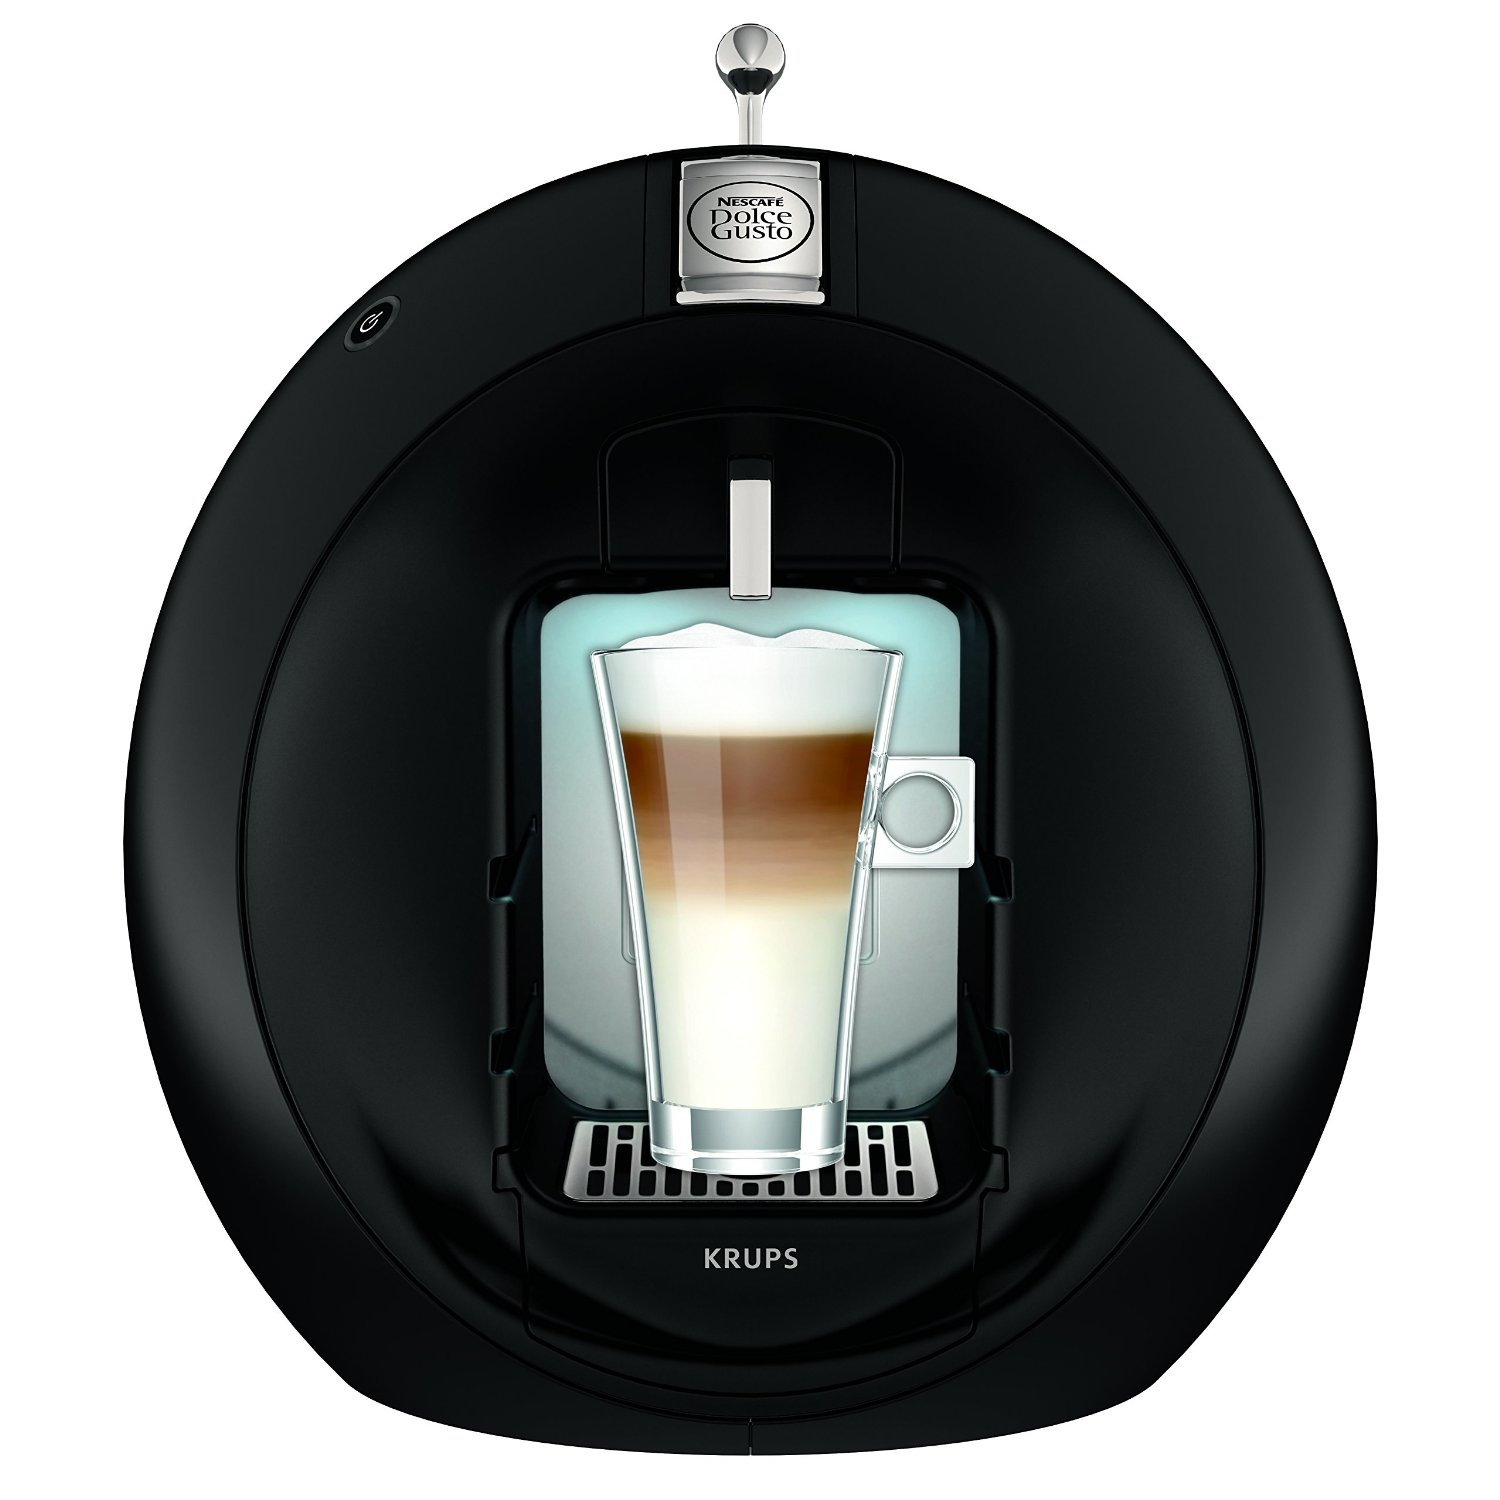 dolce gusto maschine test erfahrungsberichte. Black Bedroom Furniture Sets. Home Design Ideas